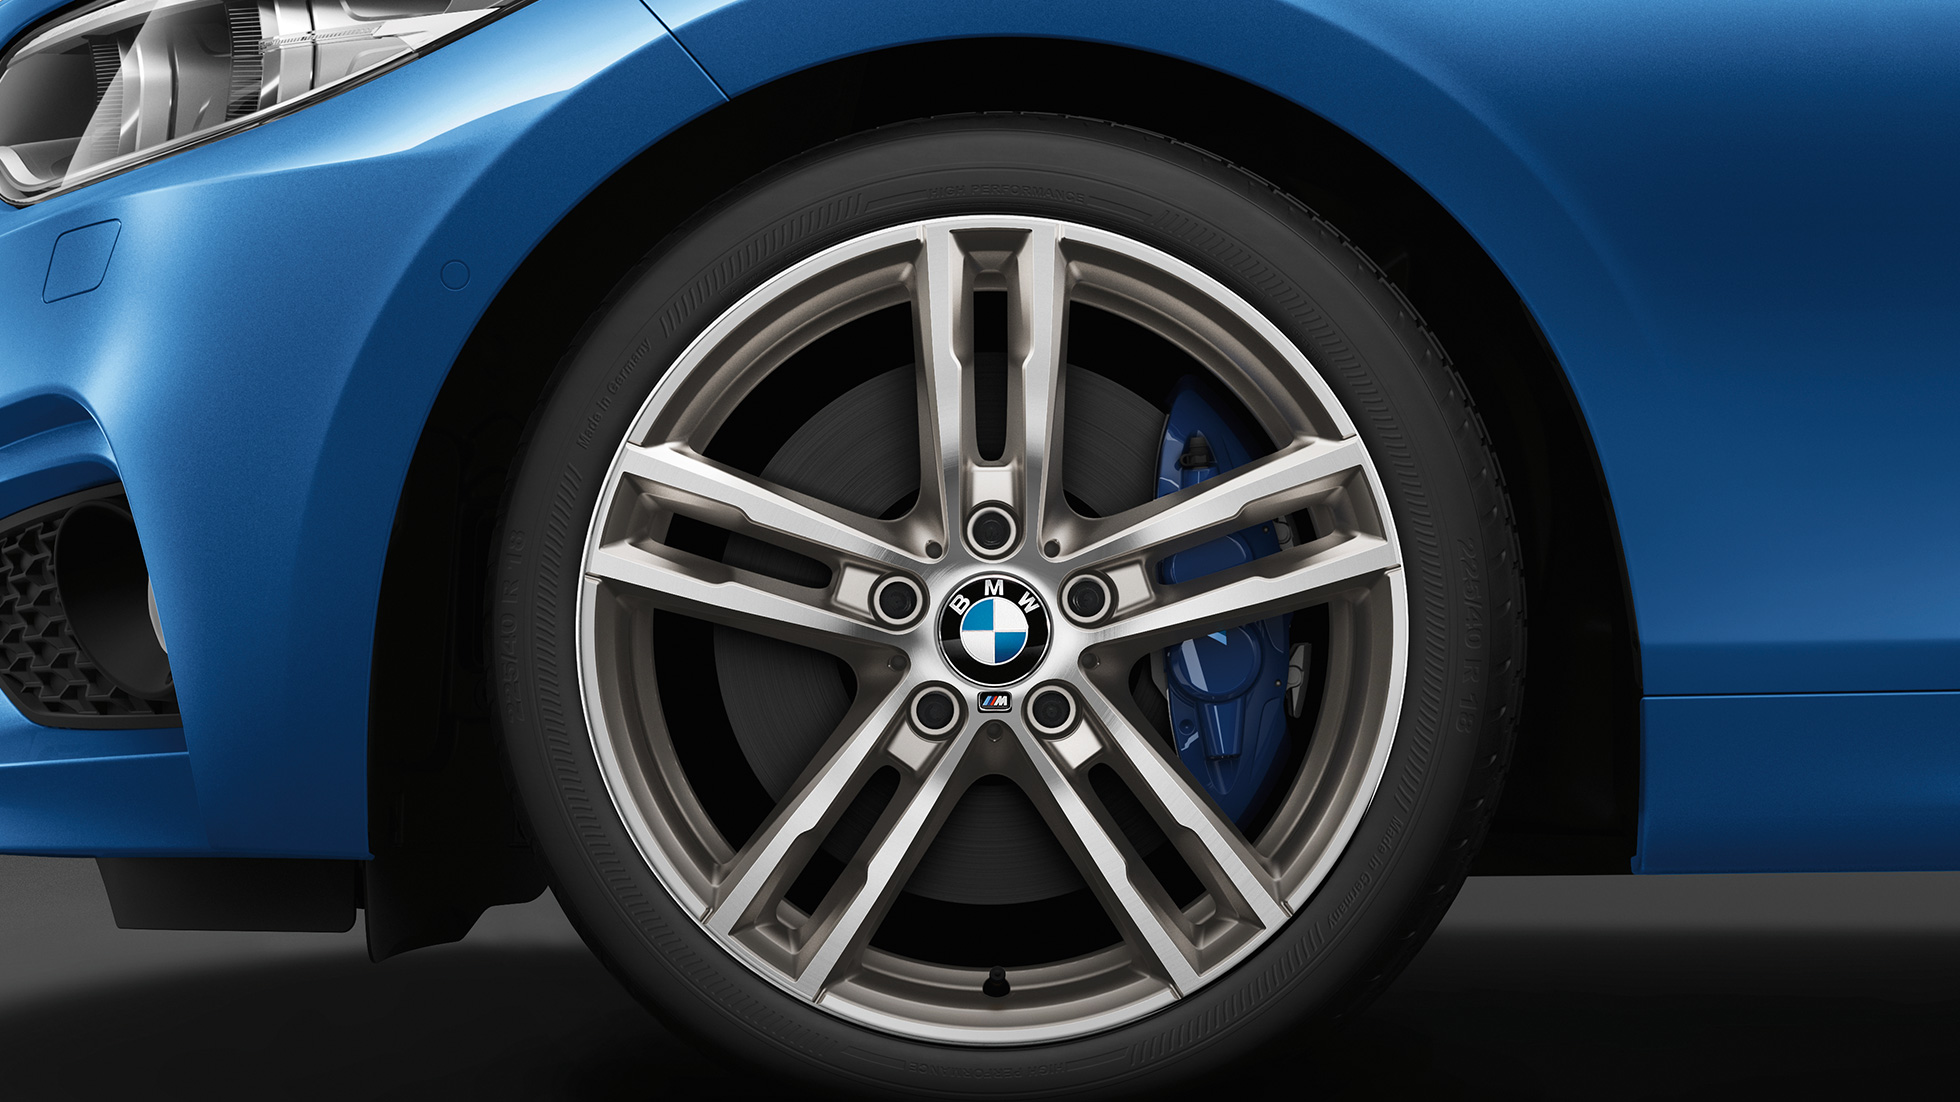 BMW 2 Series Convertible, Model M Sport wheels